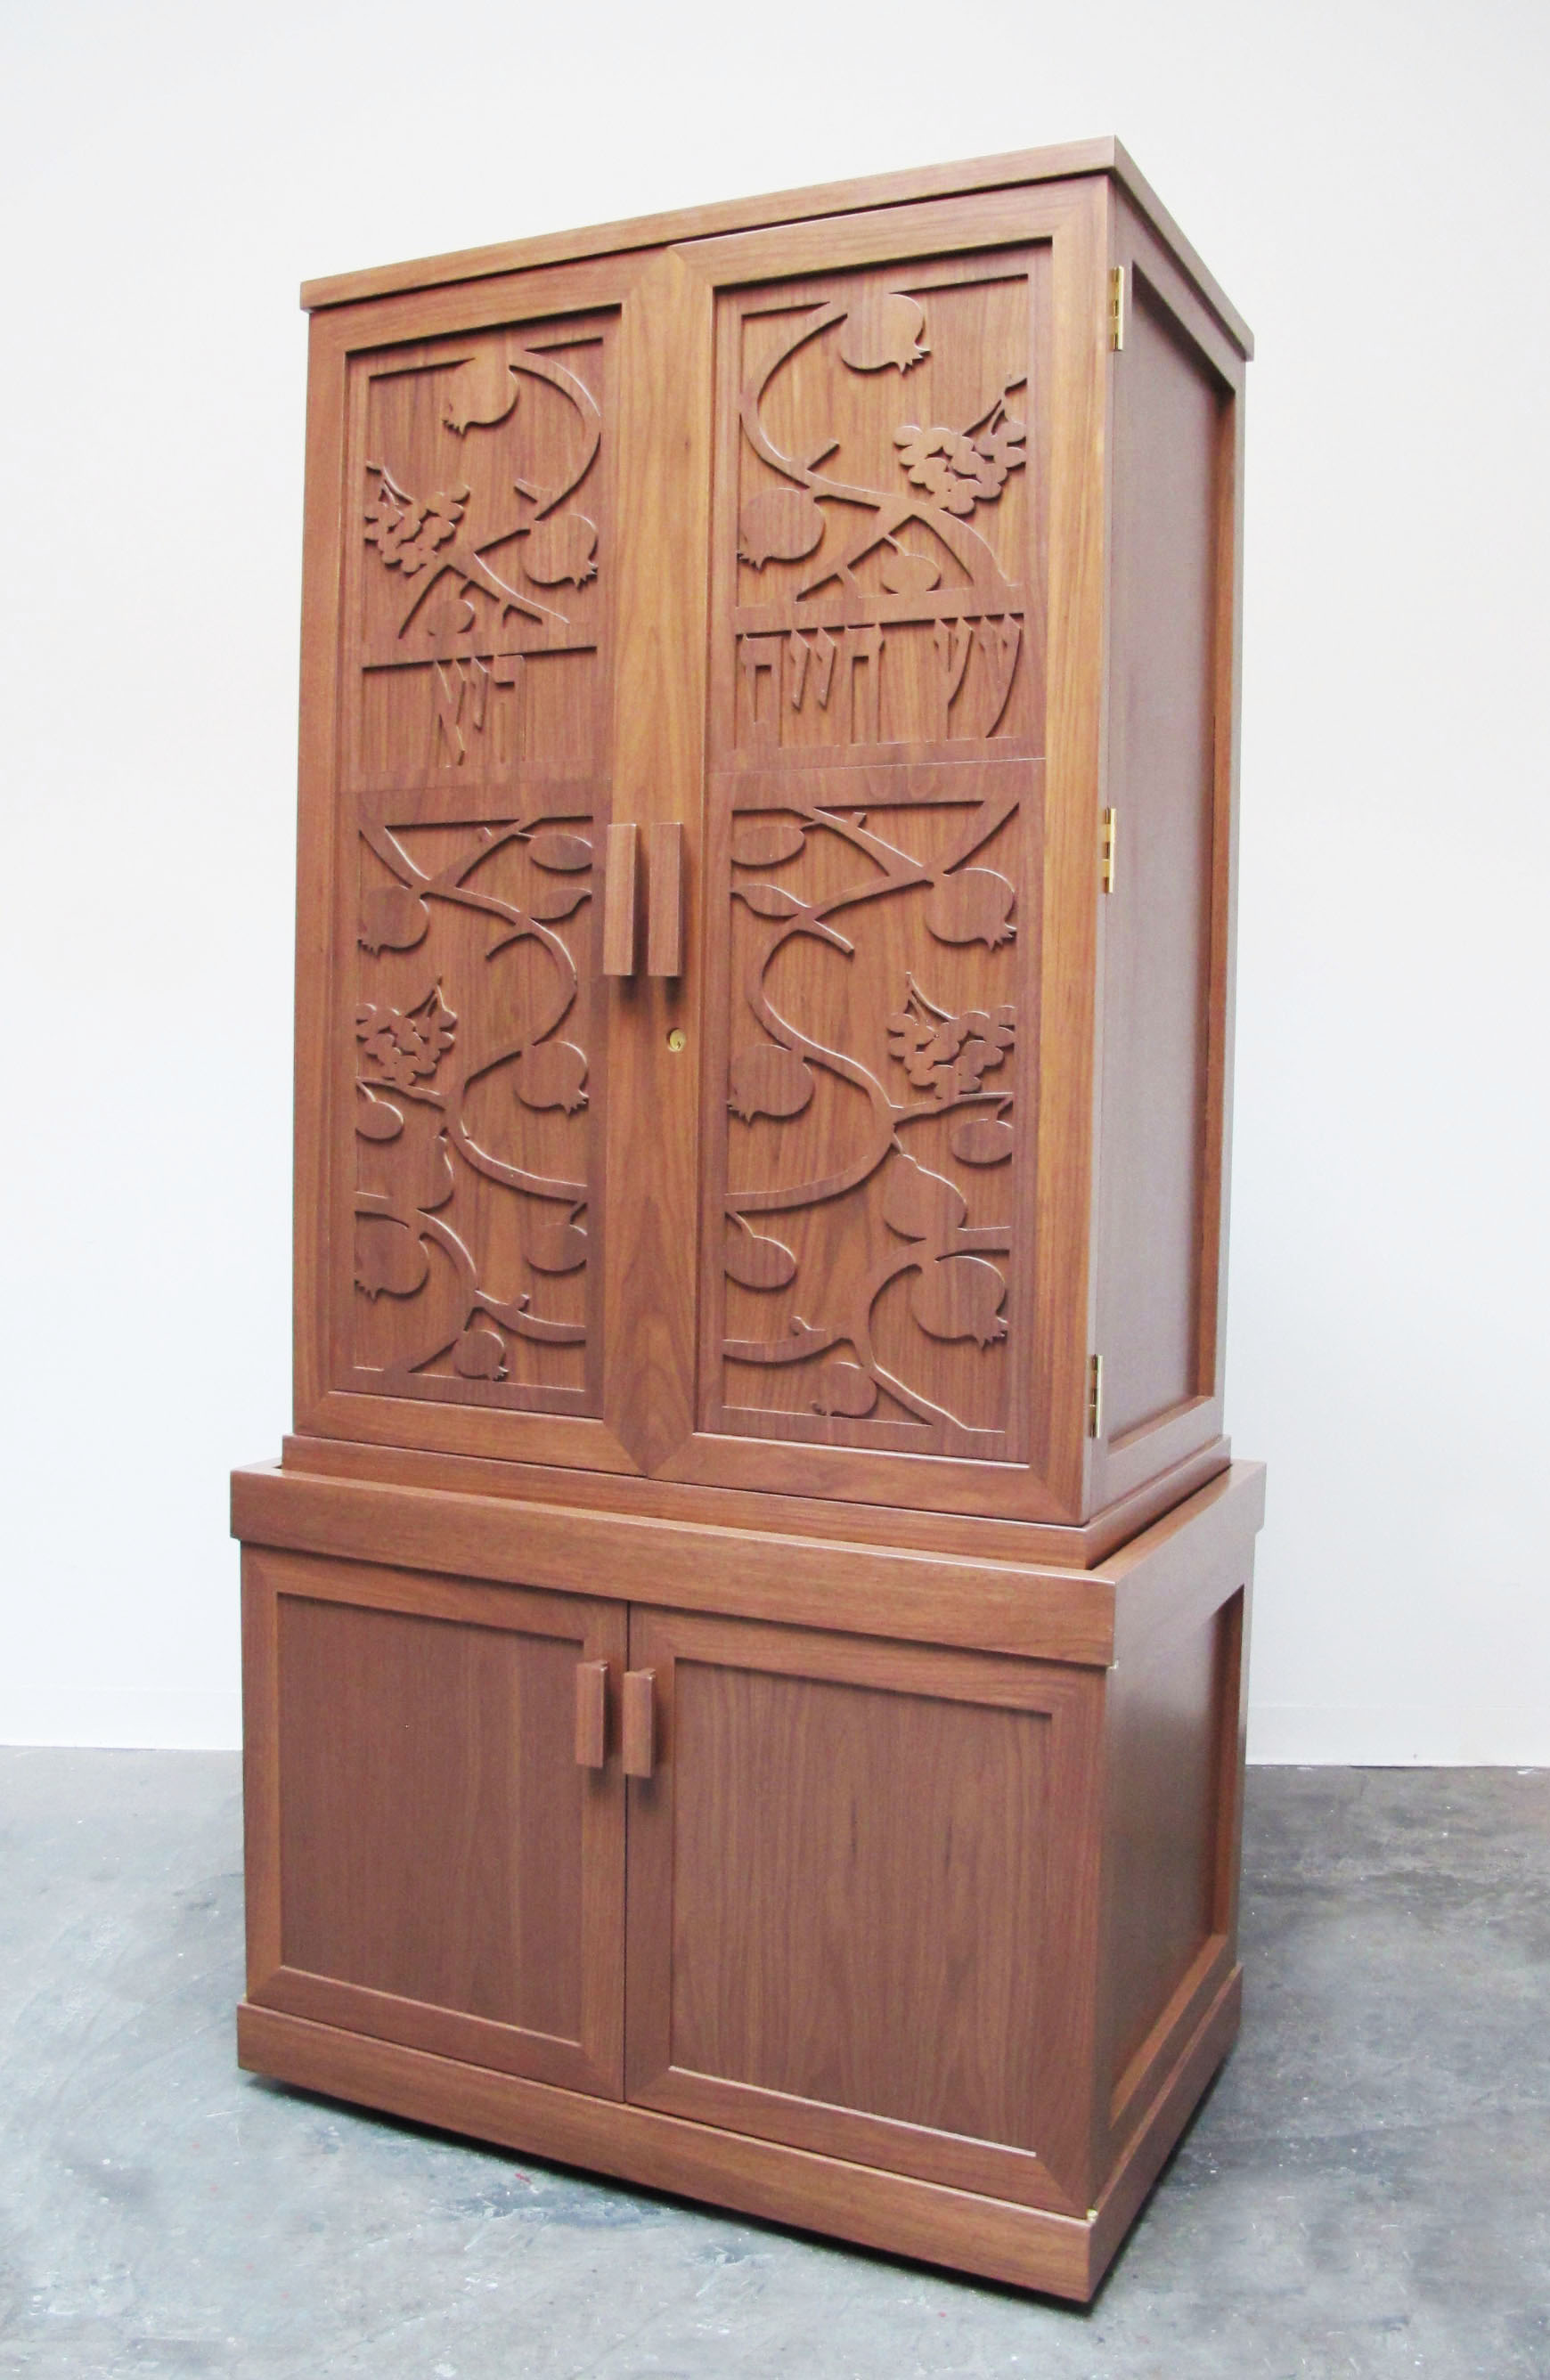 Mahogany Fruit and Branches Two Torah Ark with Storage